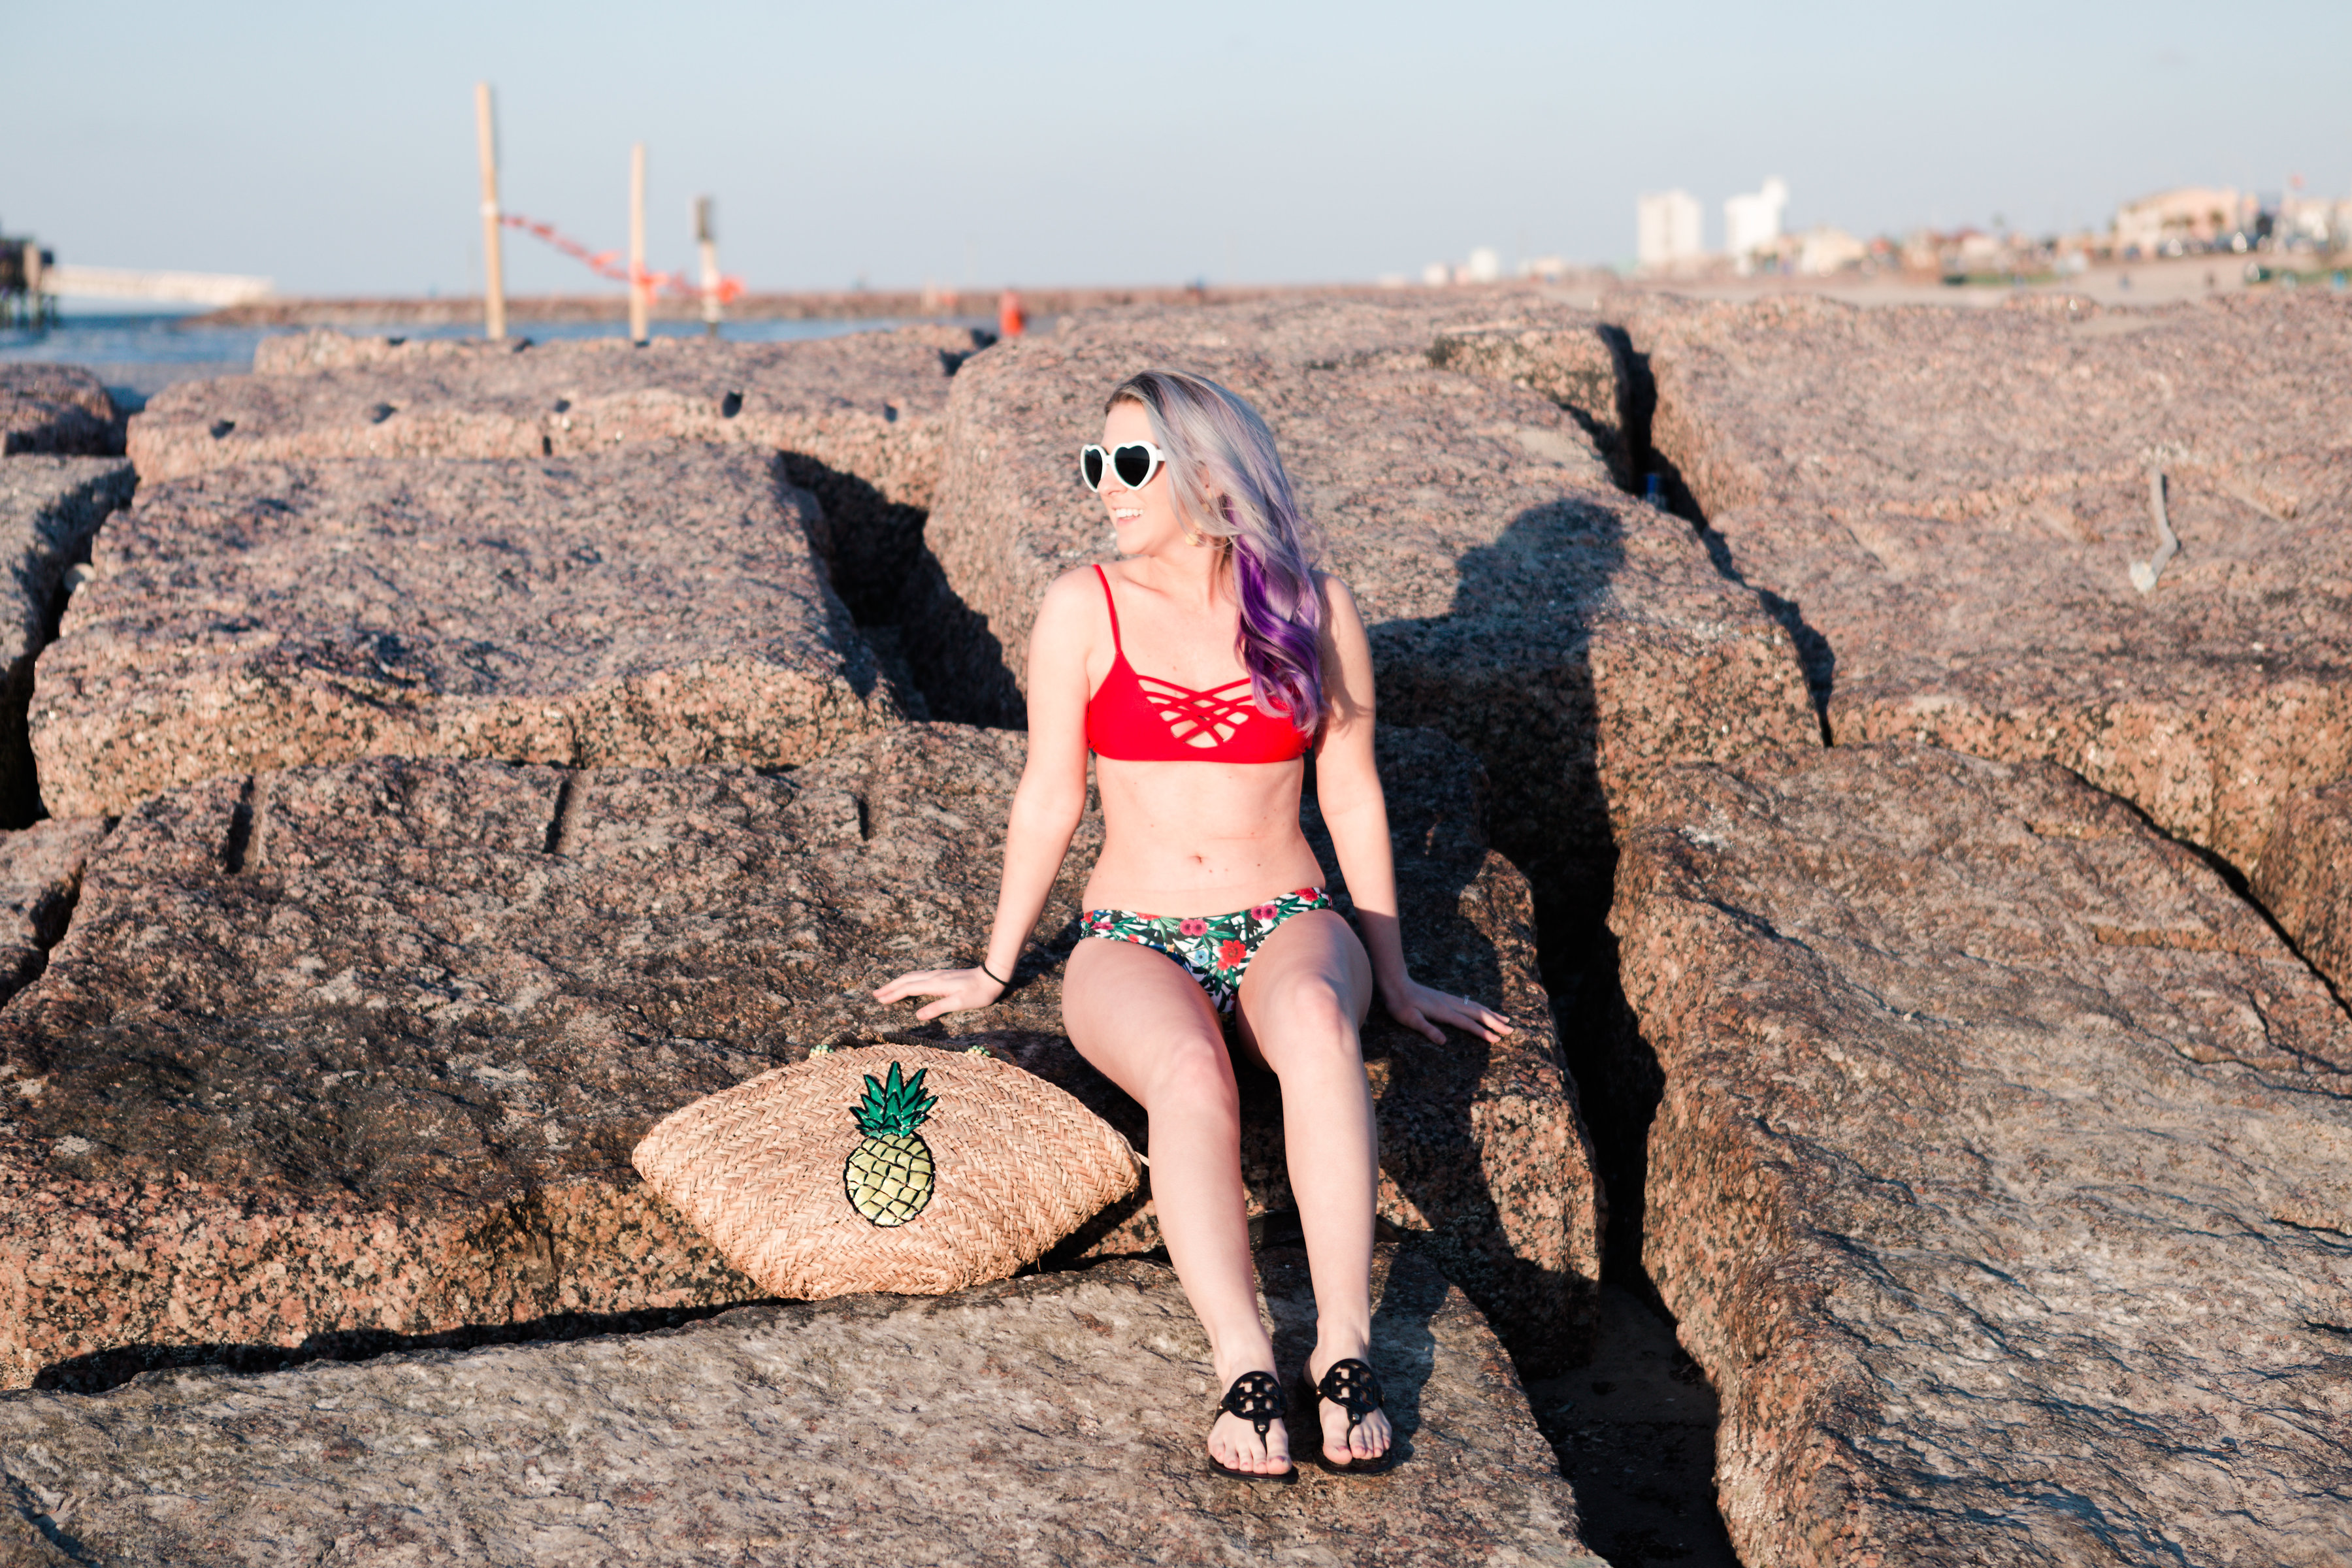 houston blogger, style blog, fashion blogger, lifestyle blogger, gracefully sassy, floral swimsuit, staycation, shein, tory burch, francescas, pravana, houston photographer, Galveston To-do's, Galveston